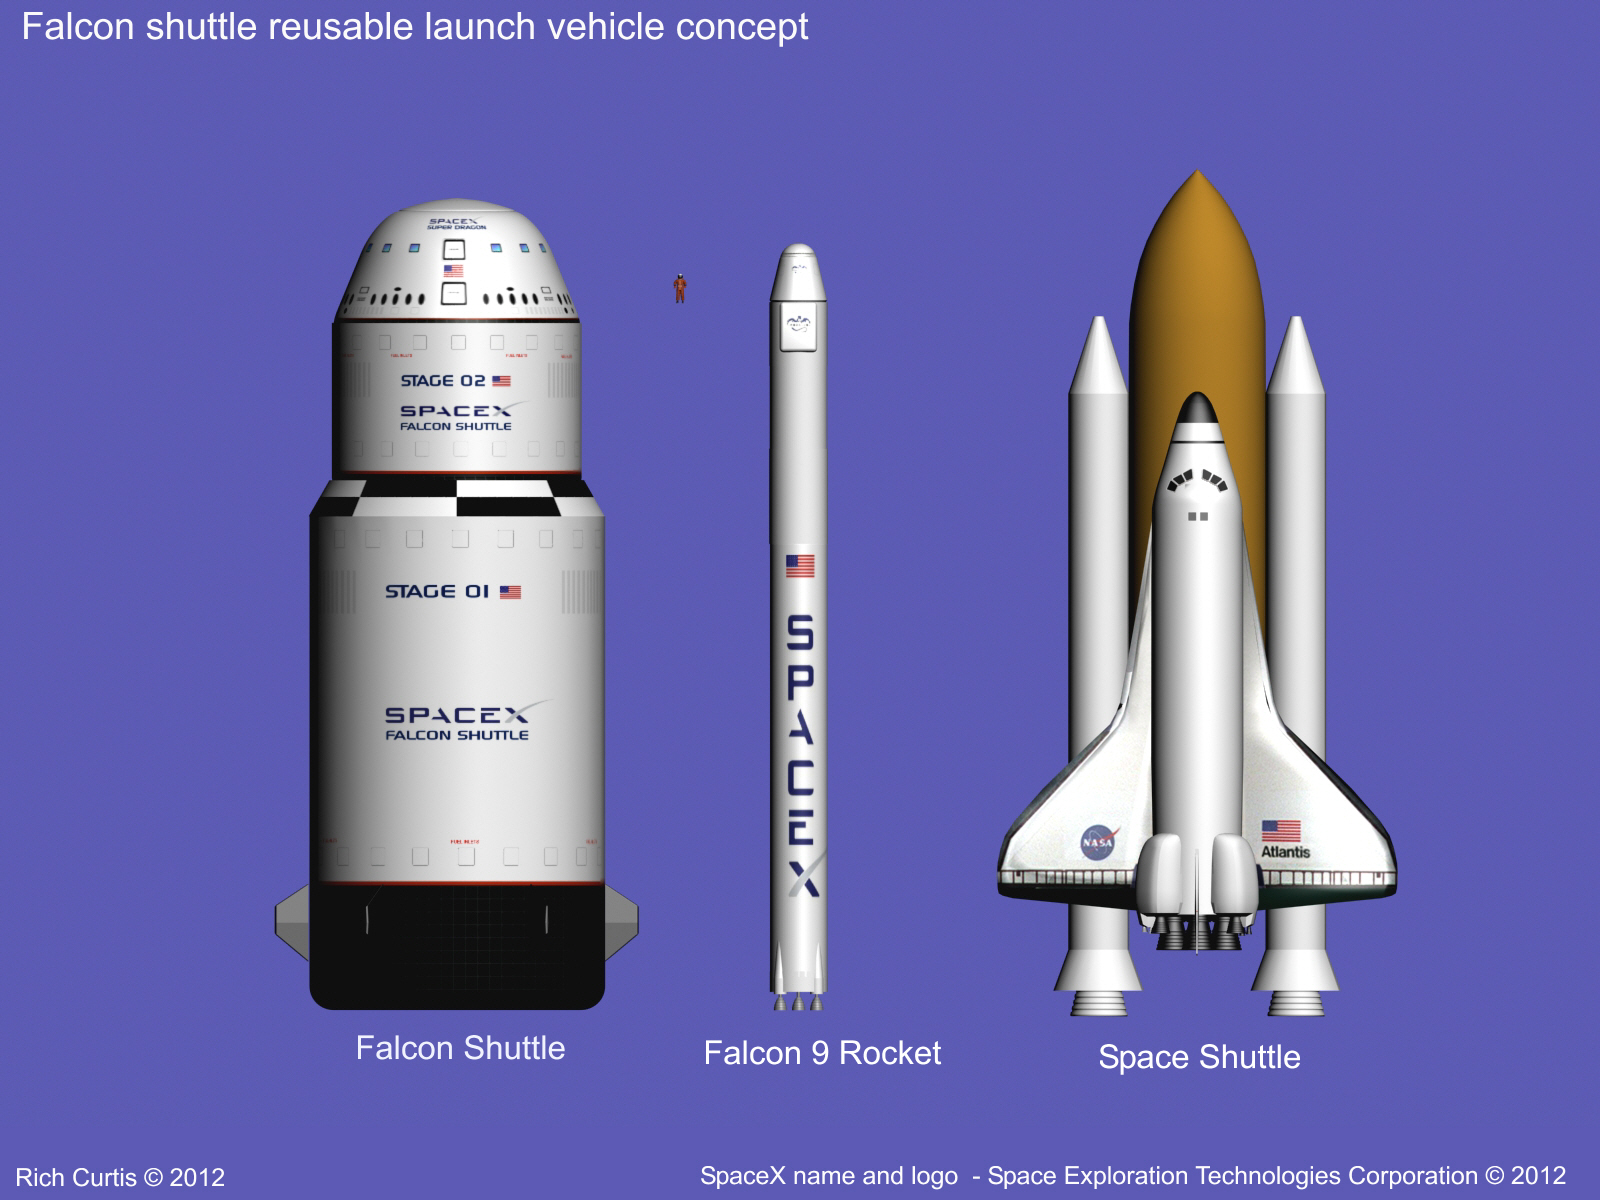 the falcon shuttle reusable launch system